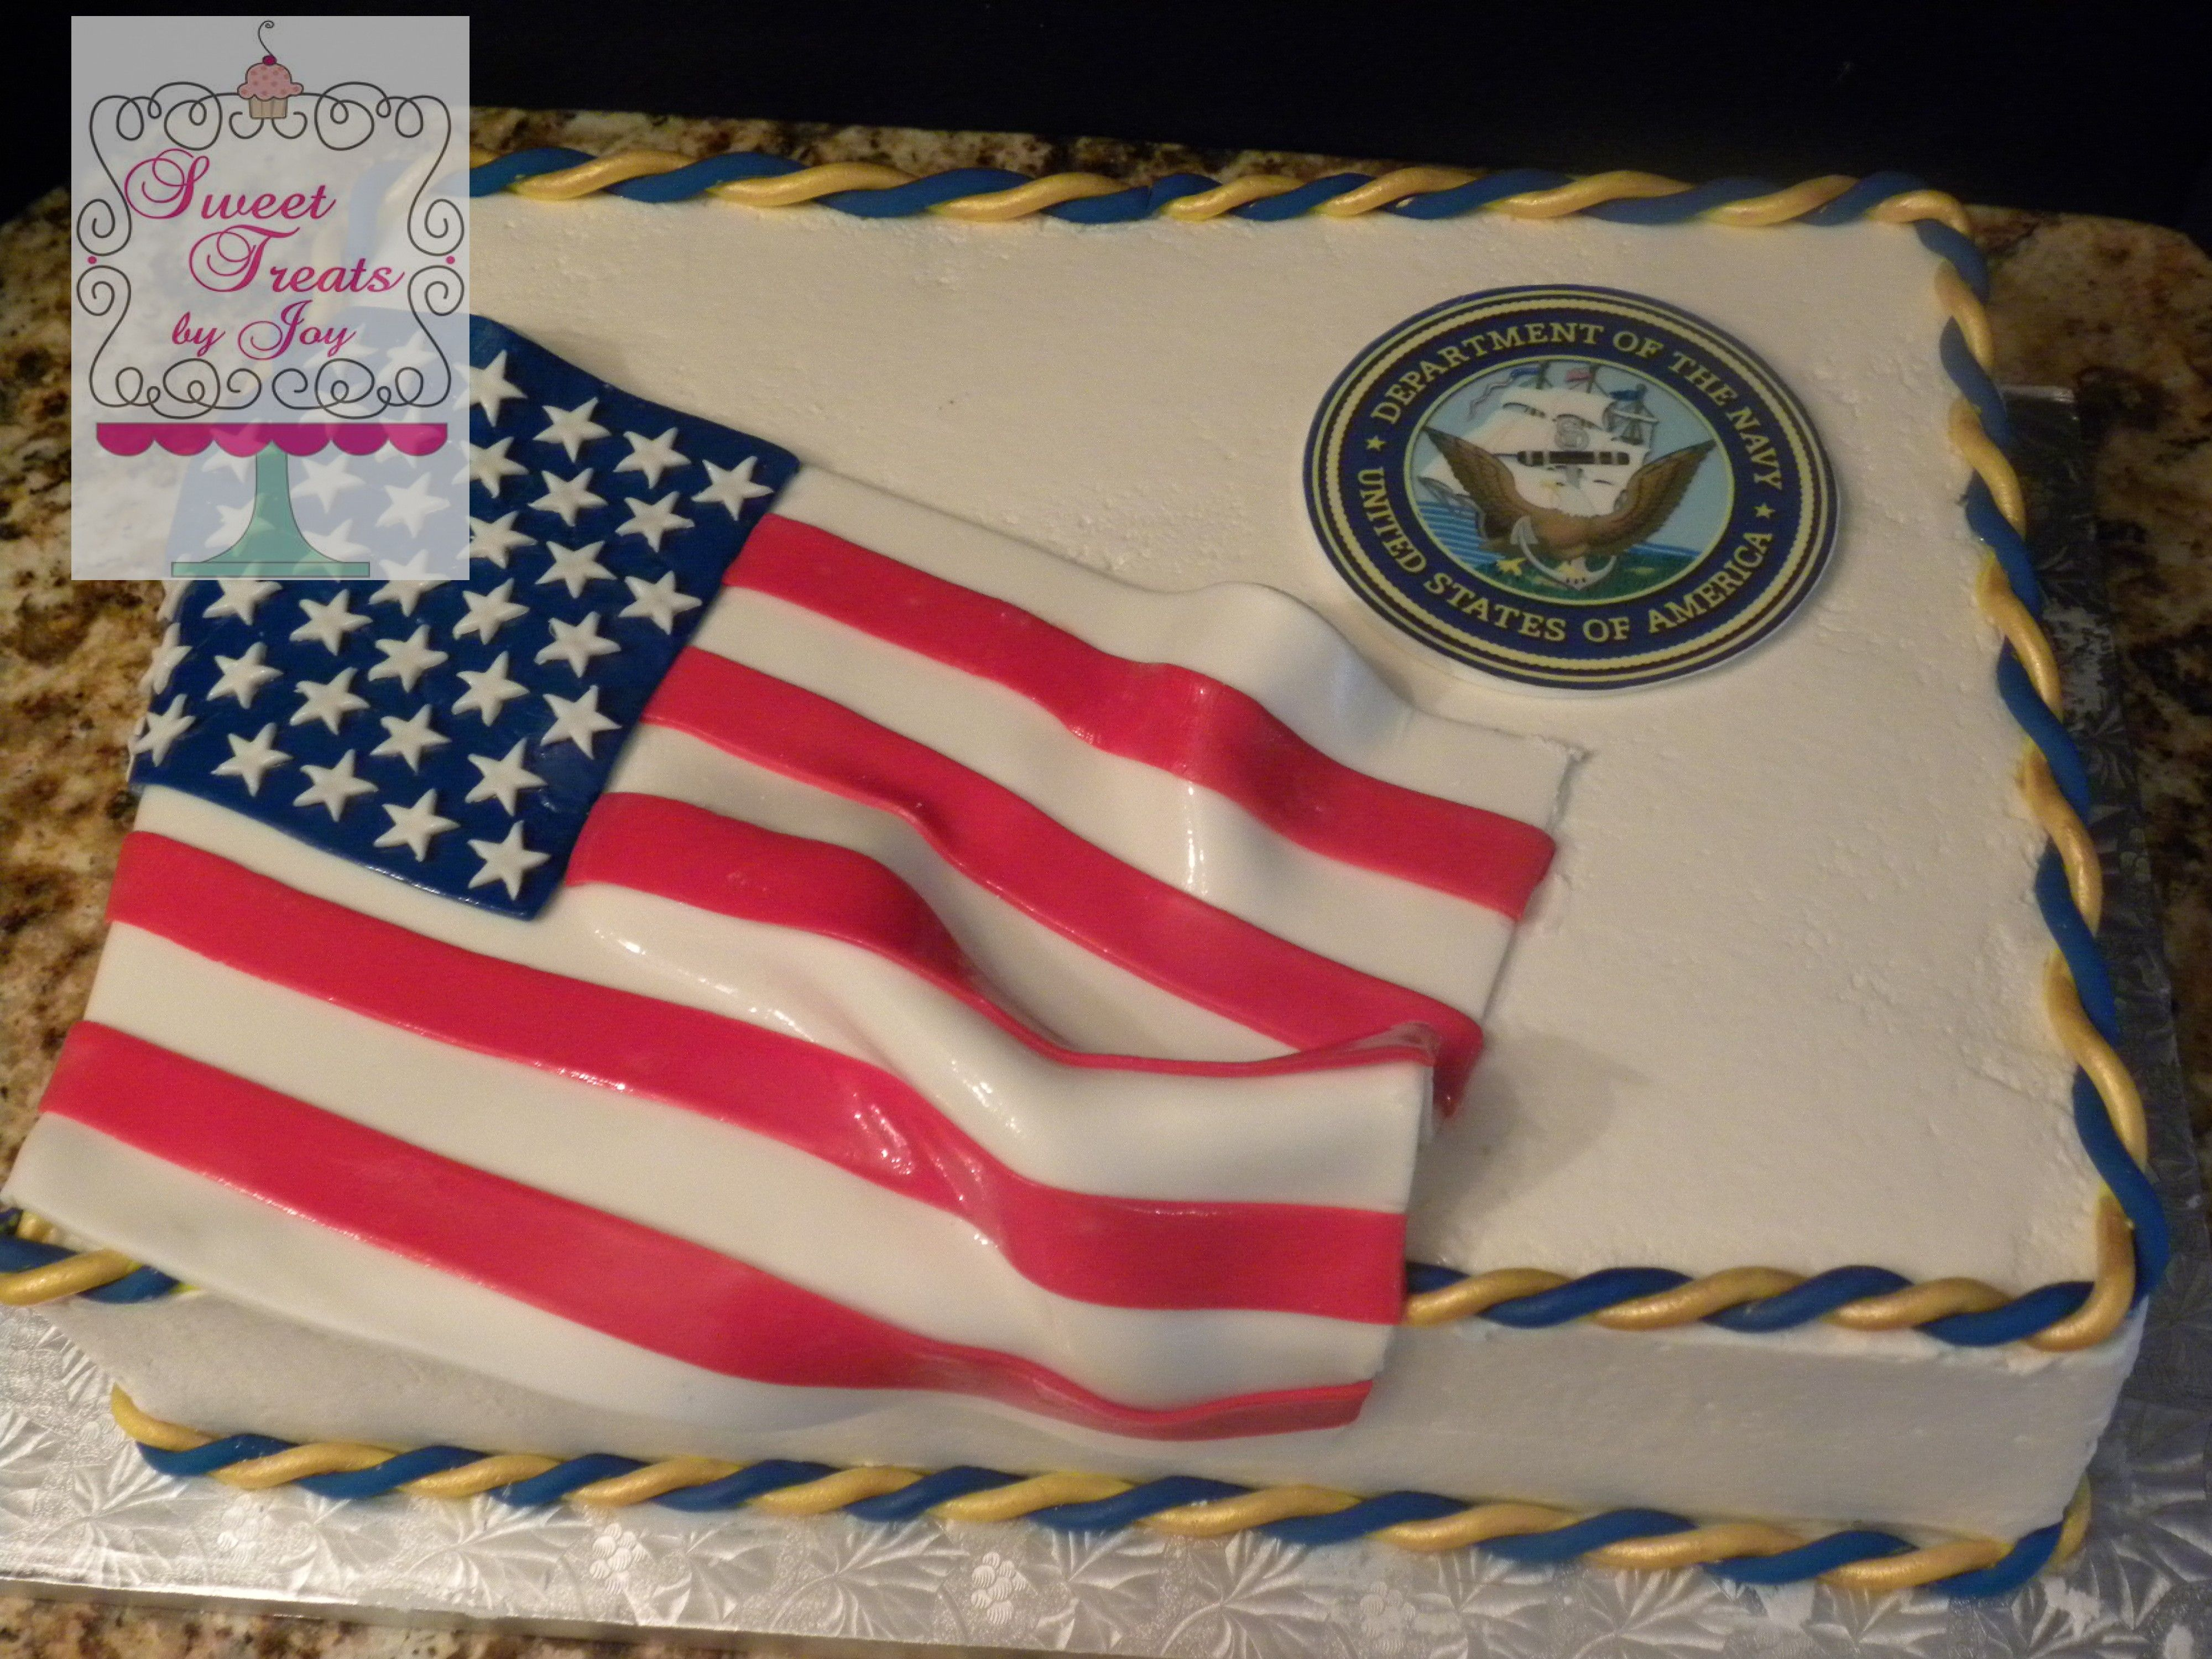 Army Retirement Cake Images : Military retirement cake. The flag was fondant and the ...